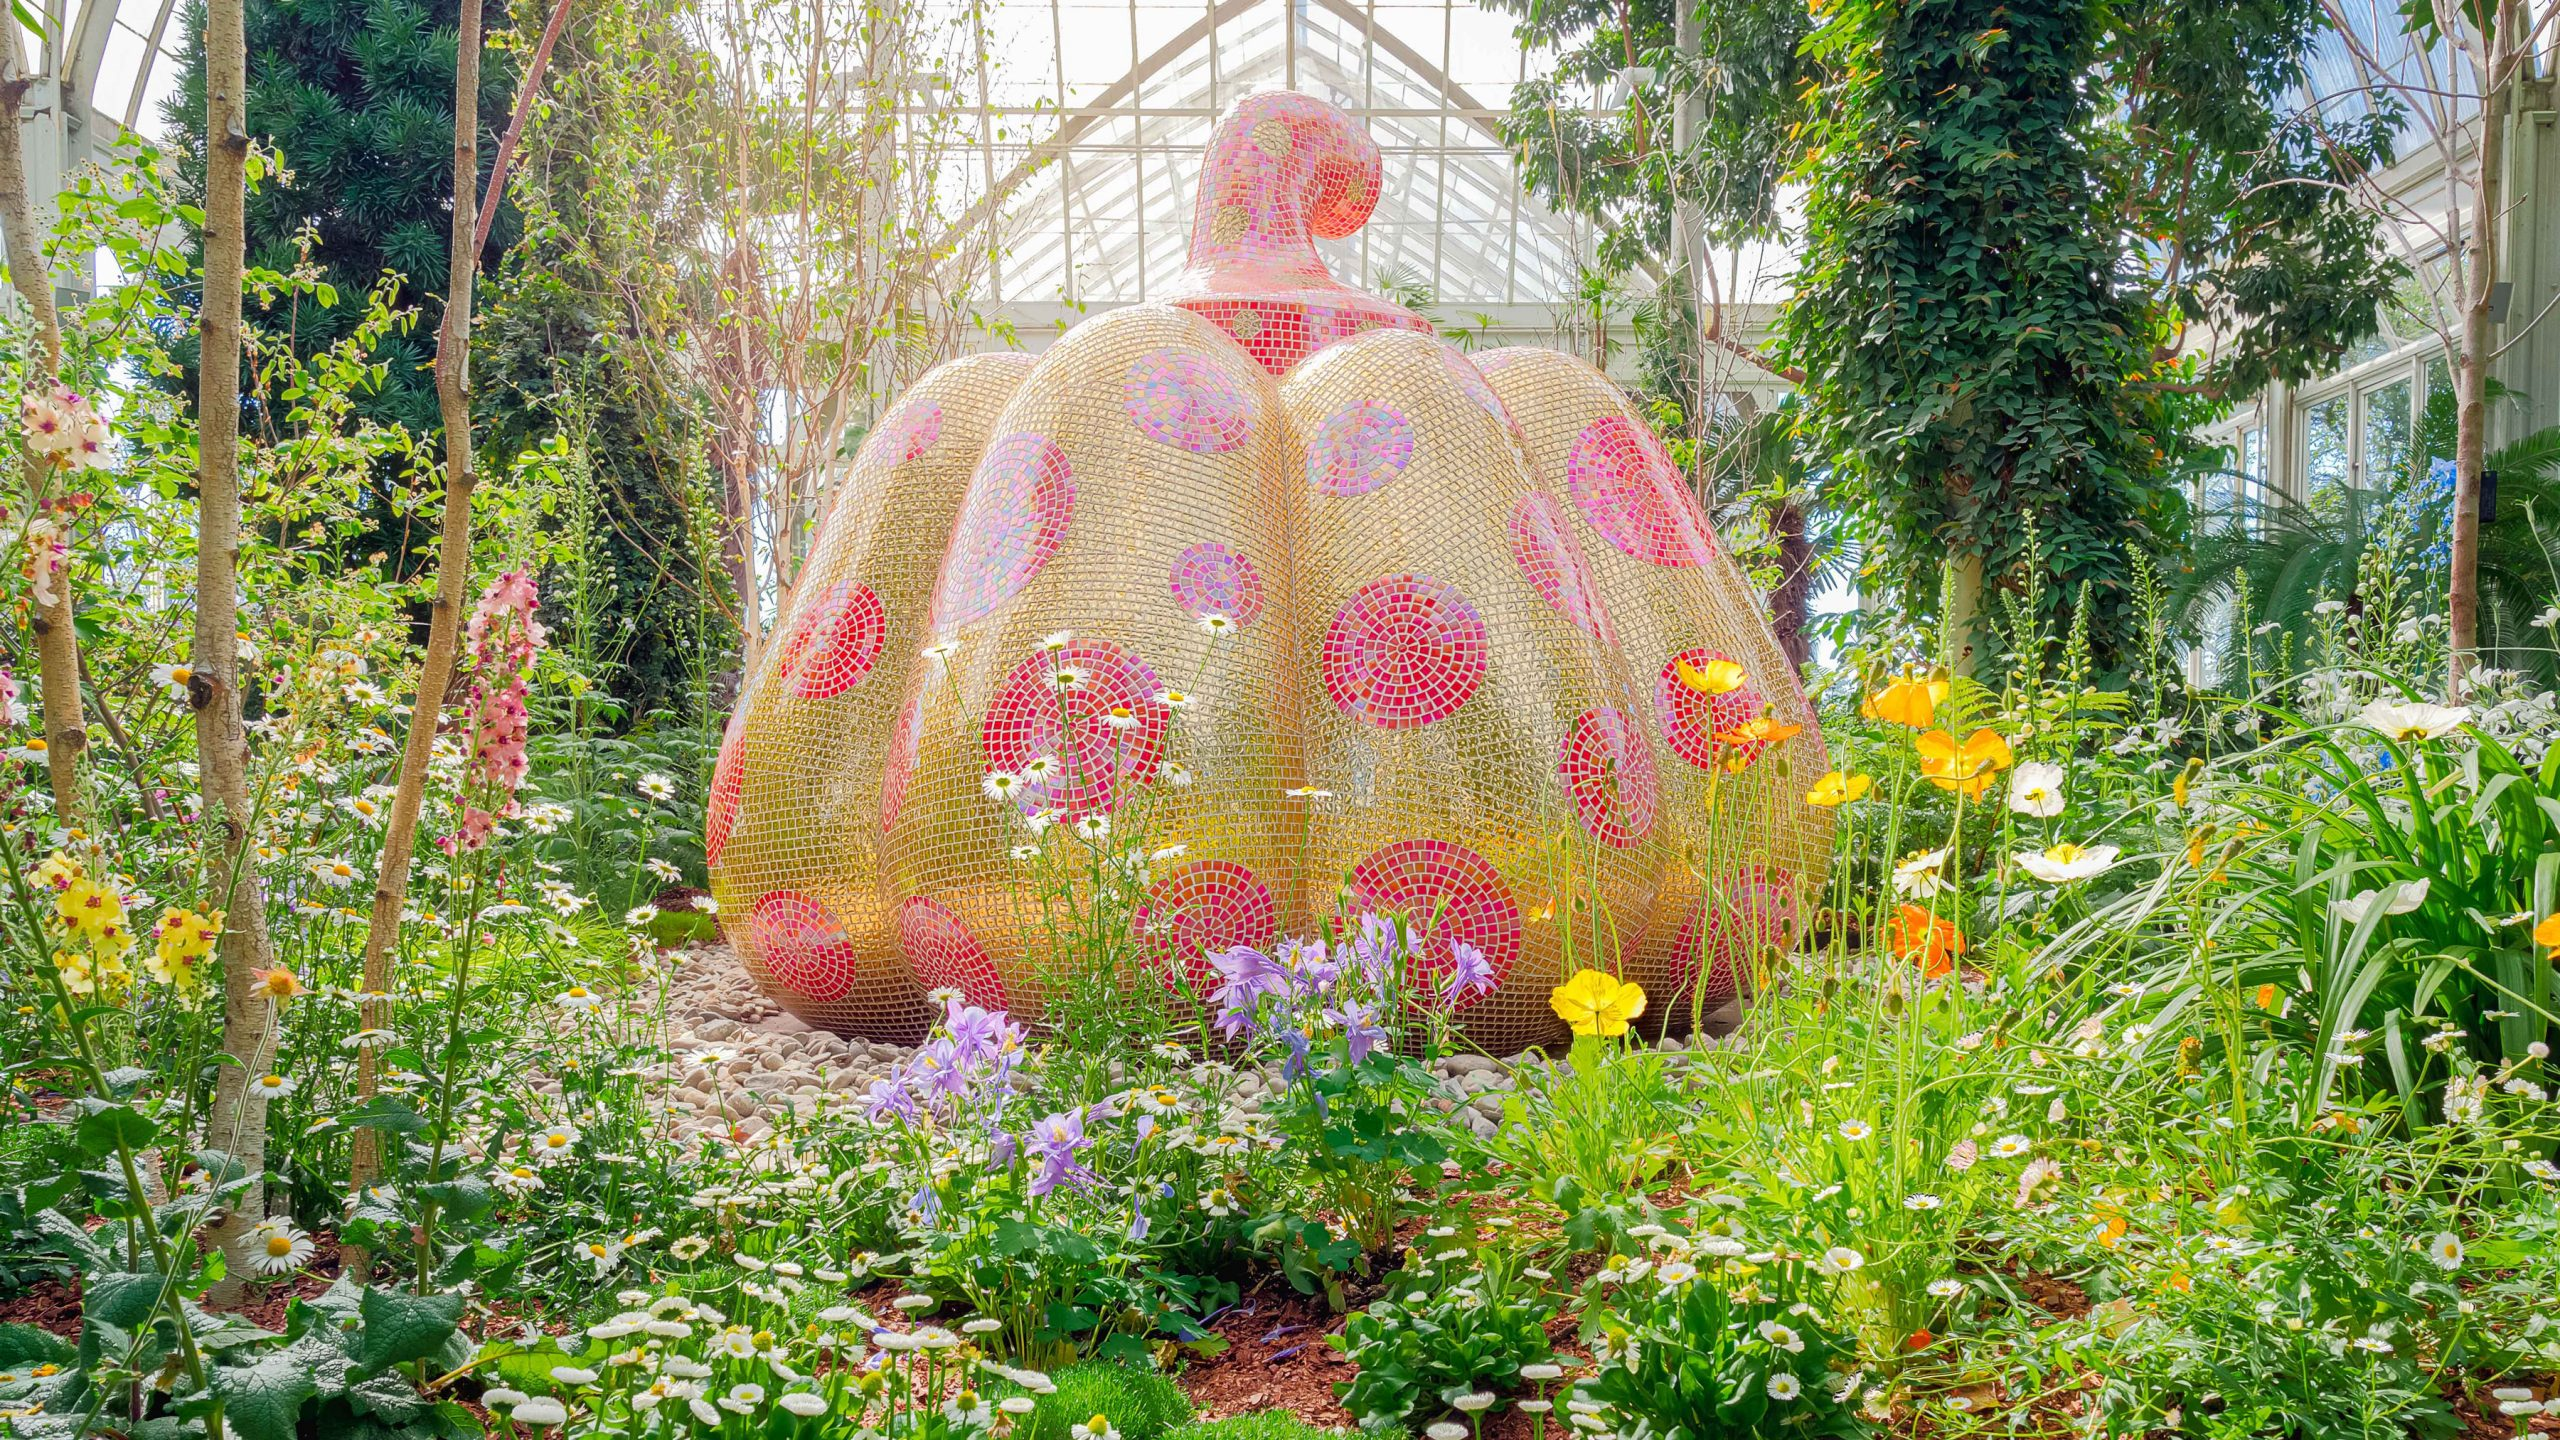 A large pumpkin sculpture covered in yellow mosaic tiles with red mosaic polka dots. Its stem is covered in red mosaic tiles with small yellow mosaic polka dots. The sculpture is nestled into a bed of low-lying flowers and plants, with small trees and vines rising up just behind it.